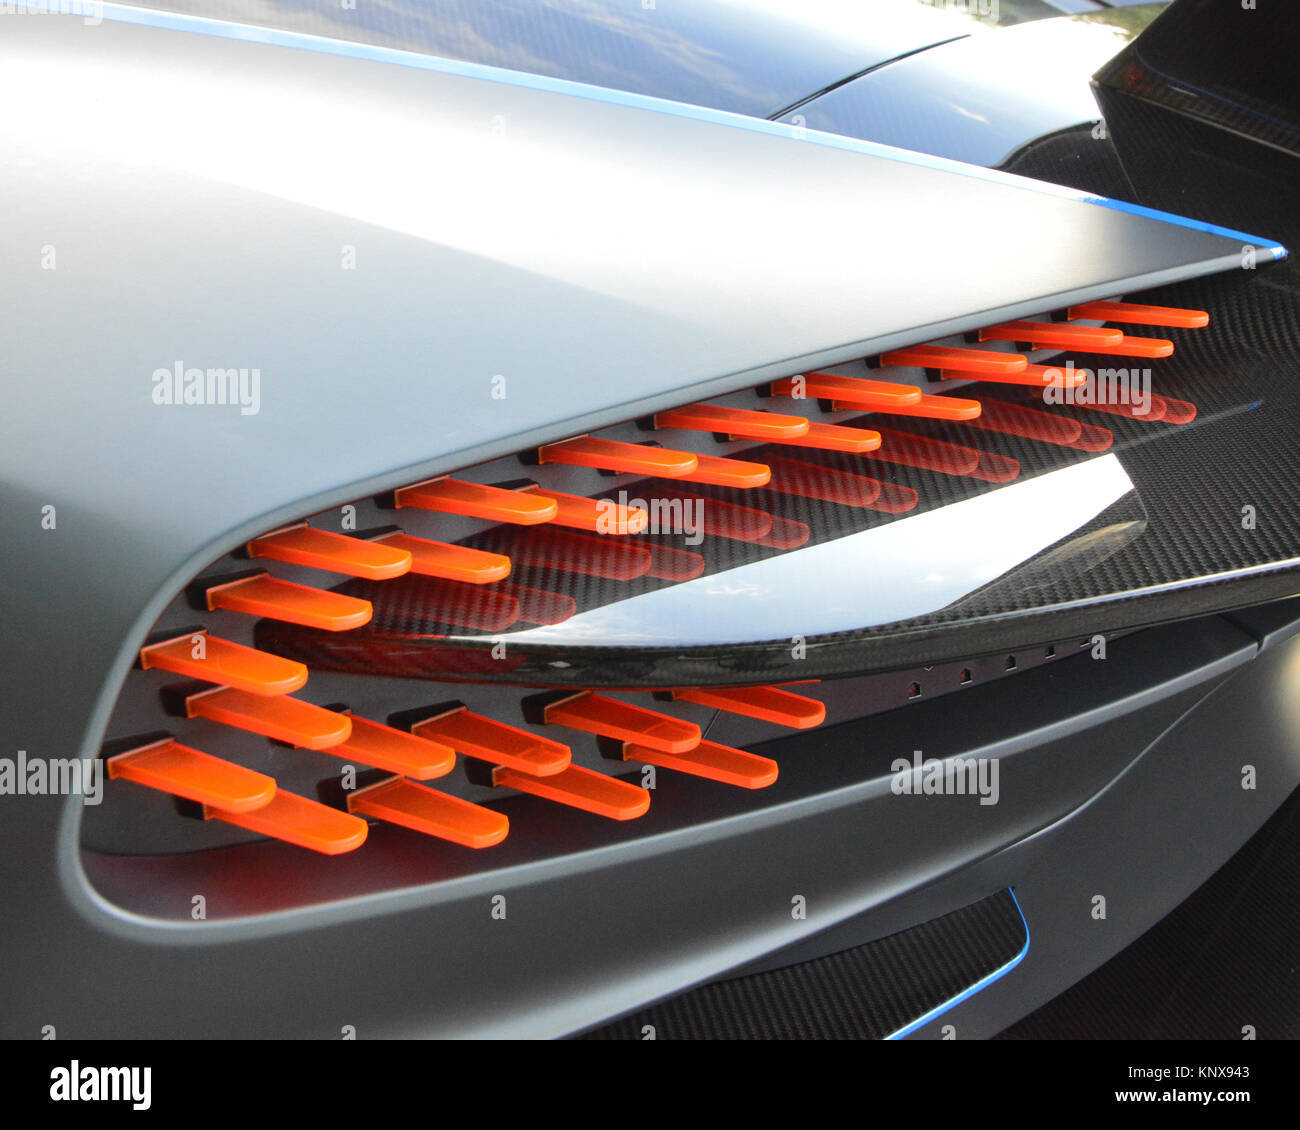 Aston Martin, Vulcan, Goodwood FoS 2015, 2015, Classic, entertainment, fearless, Festival of Speed, Flat out, FoS, - Stock Image